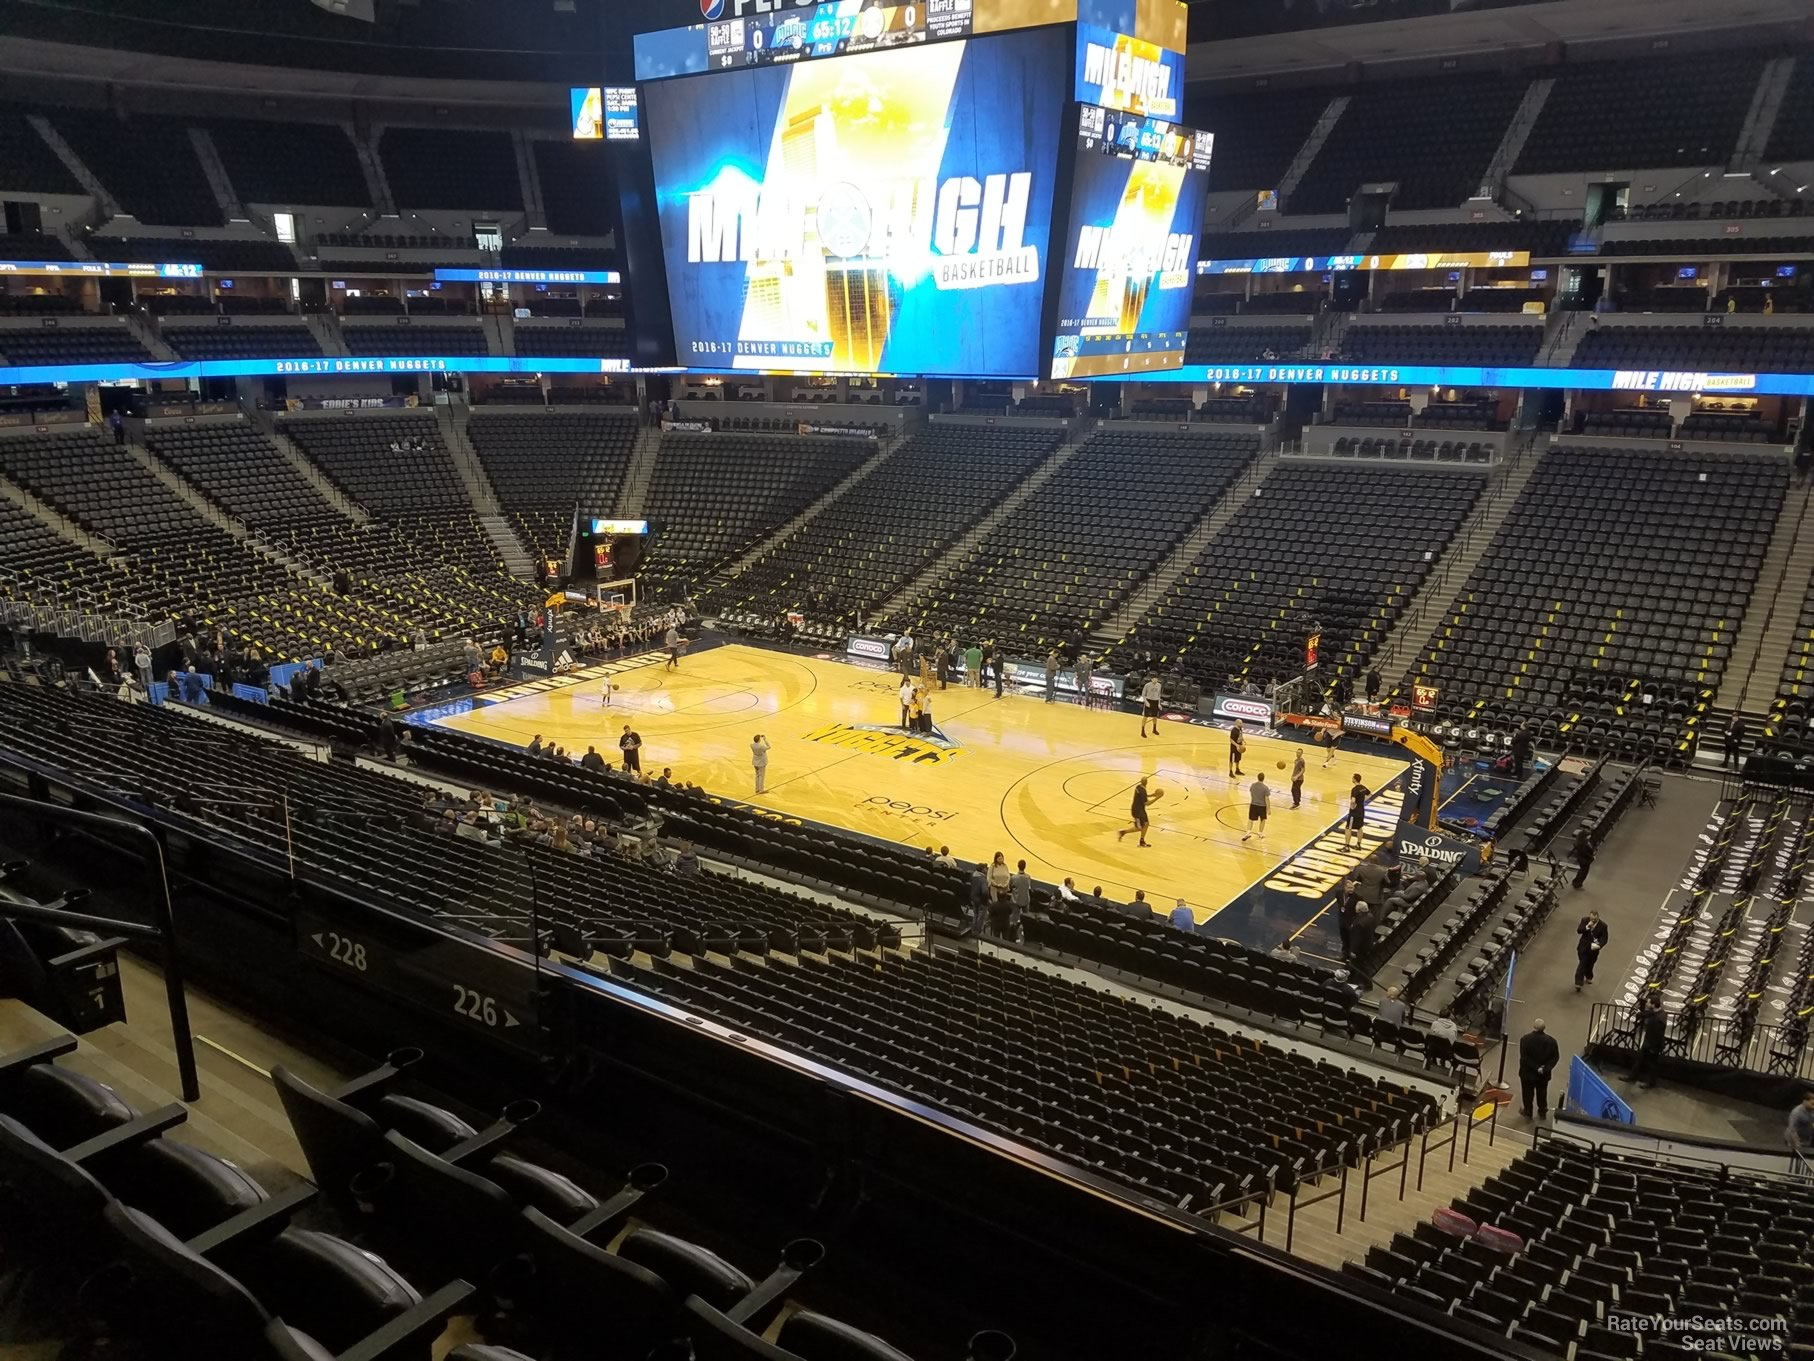 Land Rover Denver >> Pepsi Center Section 226 - Denver Nuggets - RateYourSeats.com